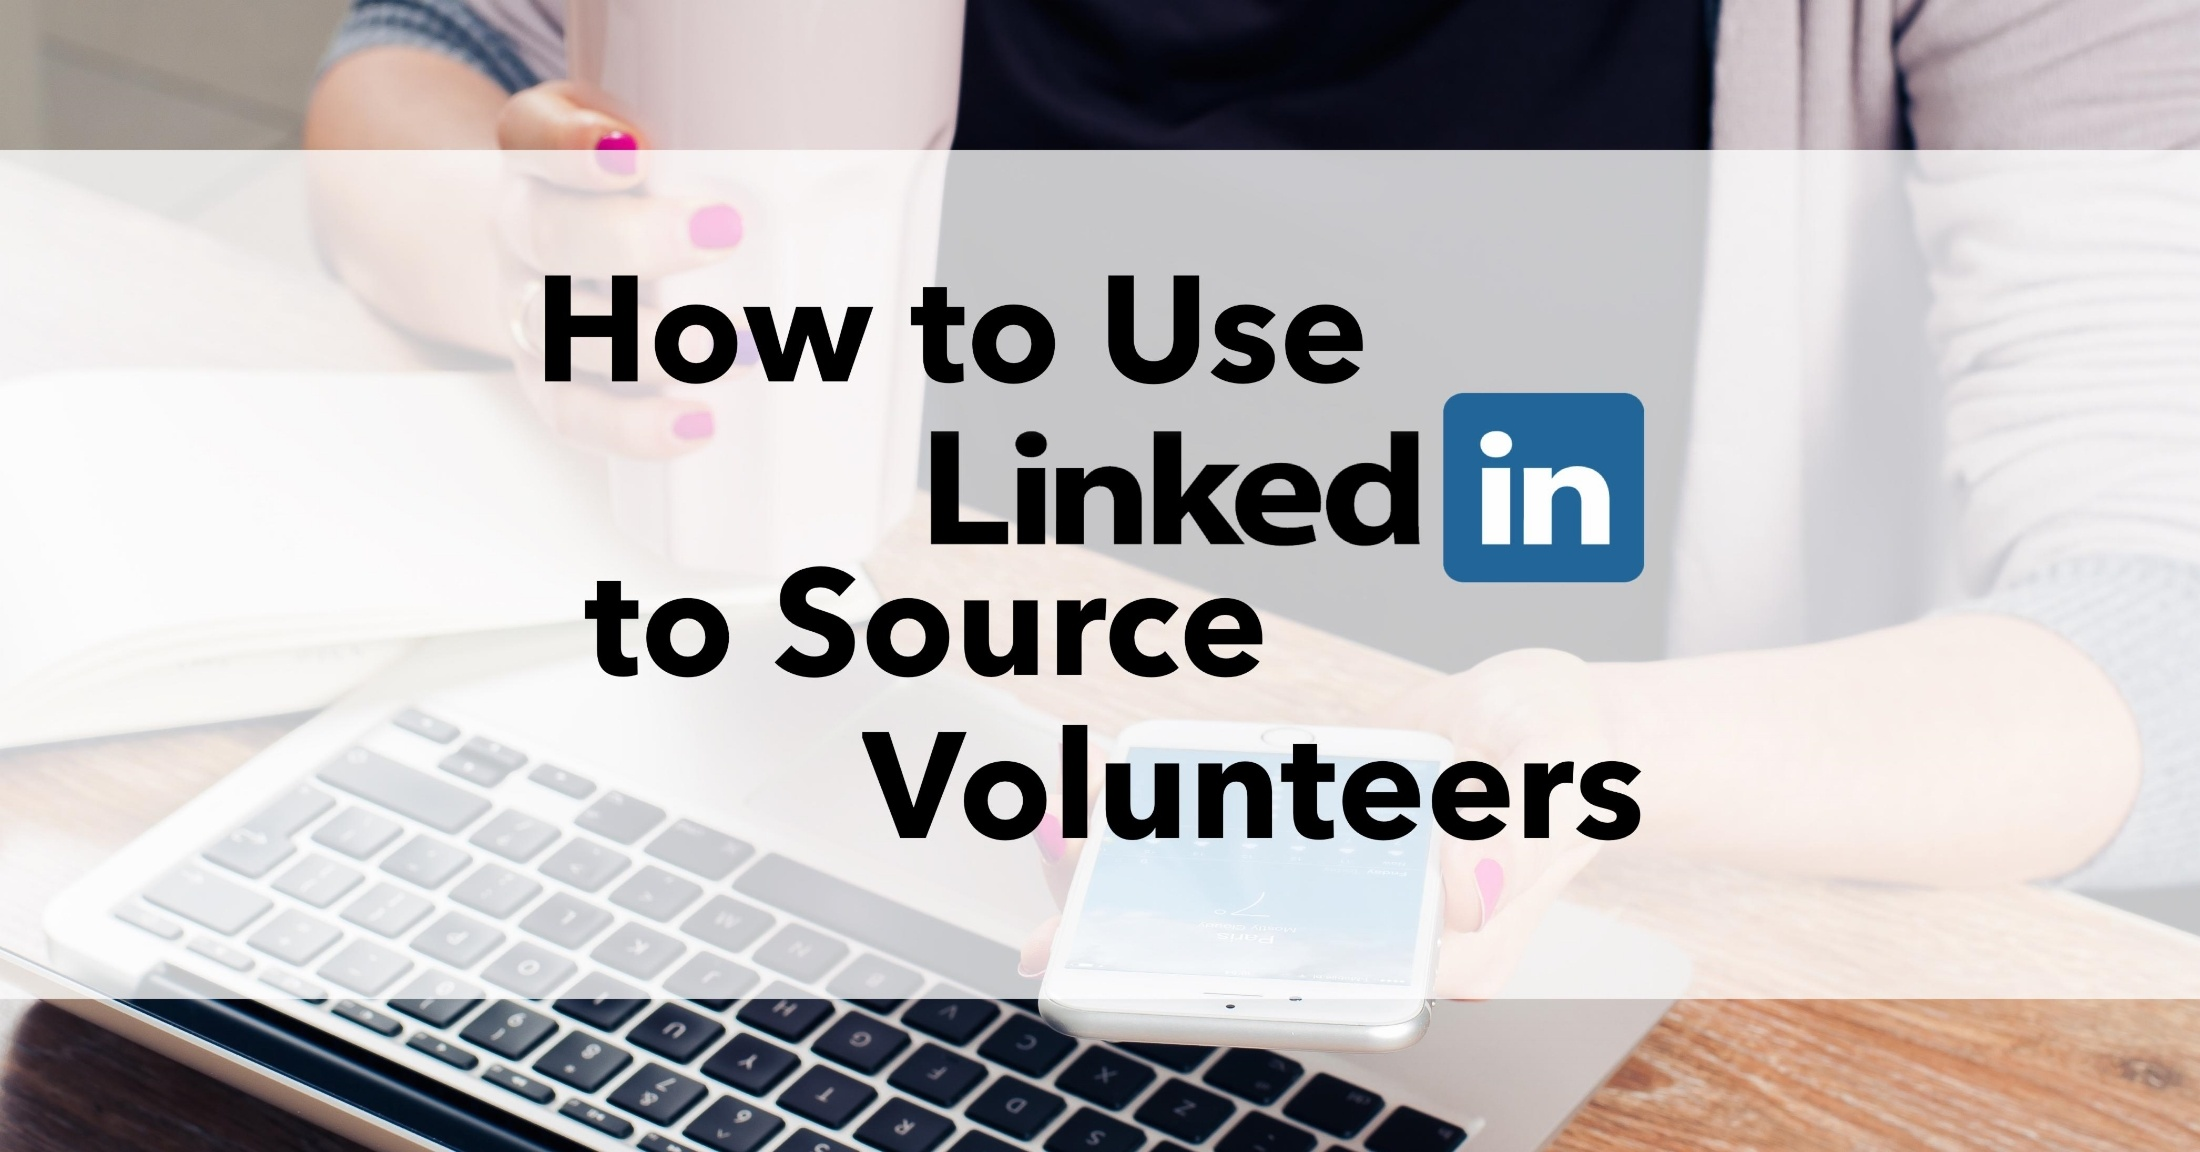 How to Use LinkedIn to Source Volunteers